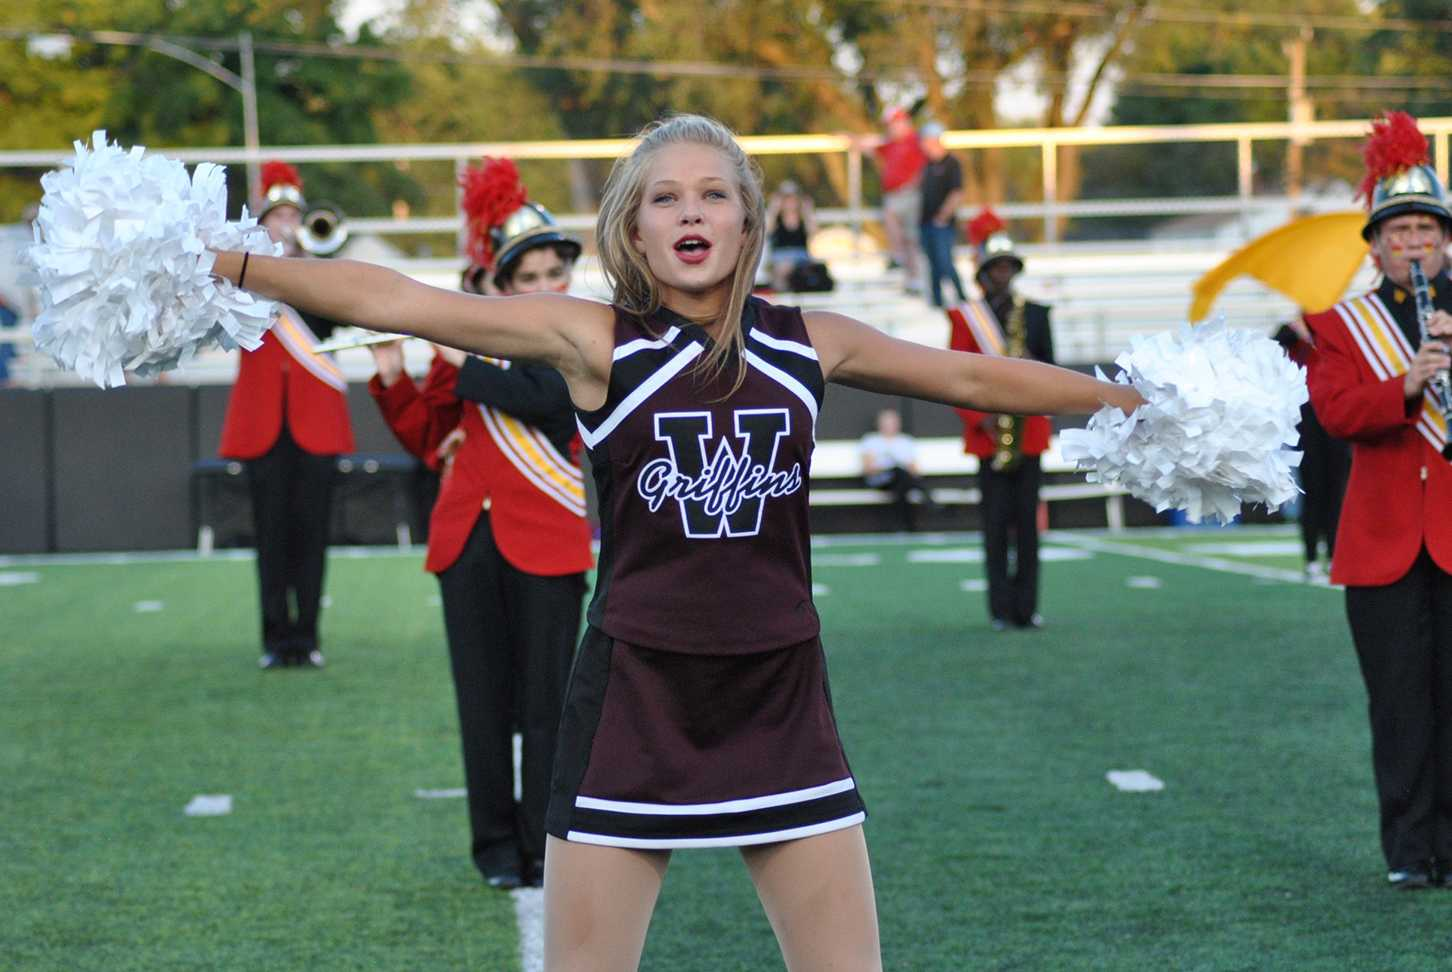 Sophomore Christine Harpe dances before the homecoming football game on Sept. 23.